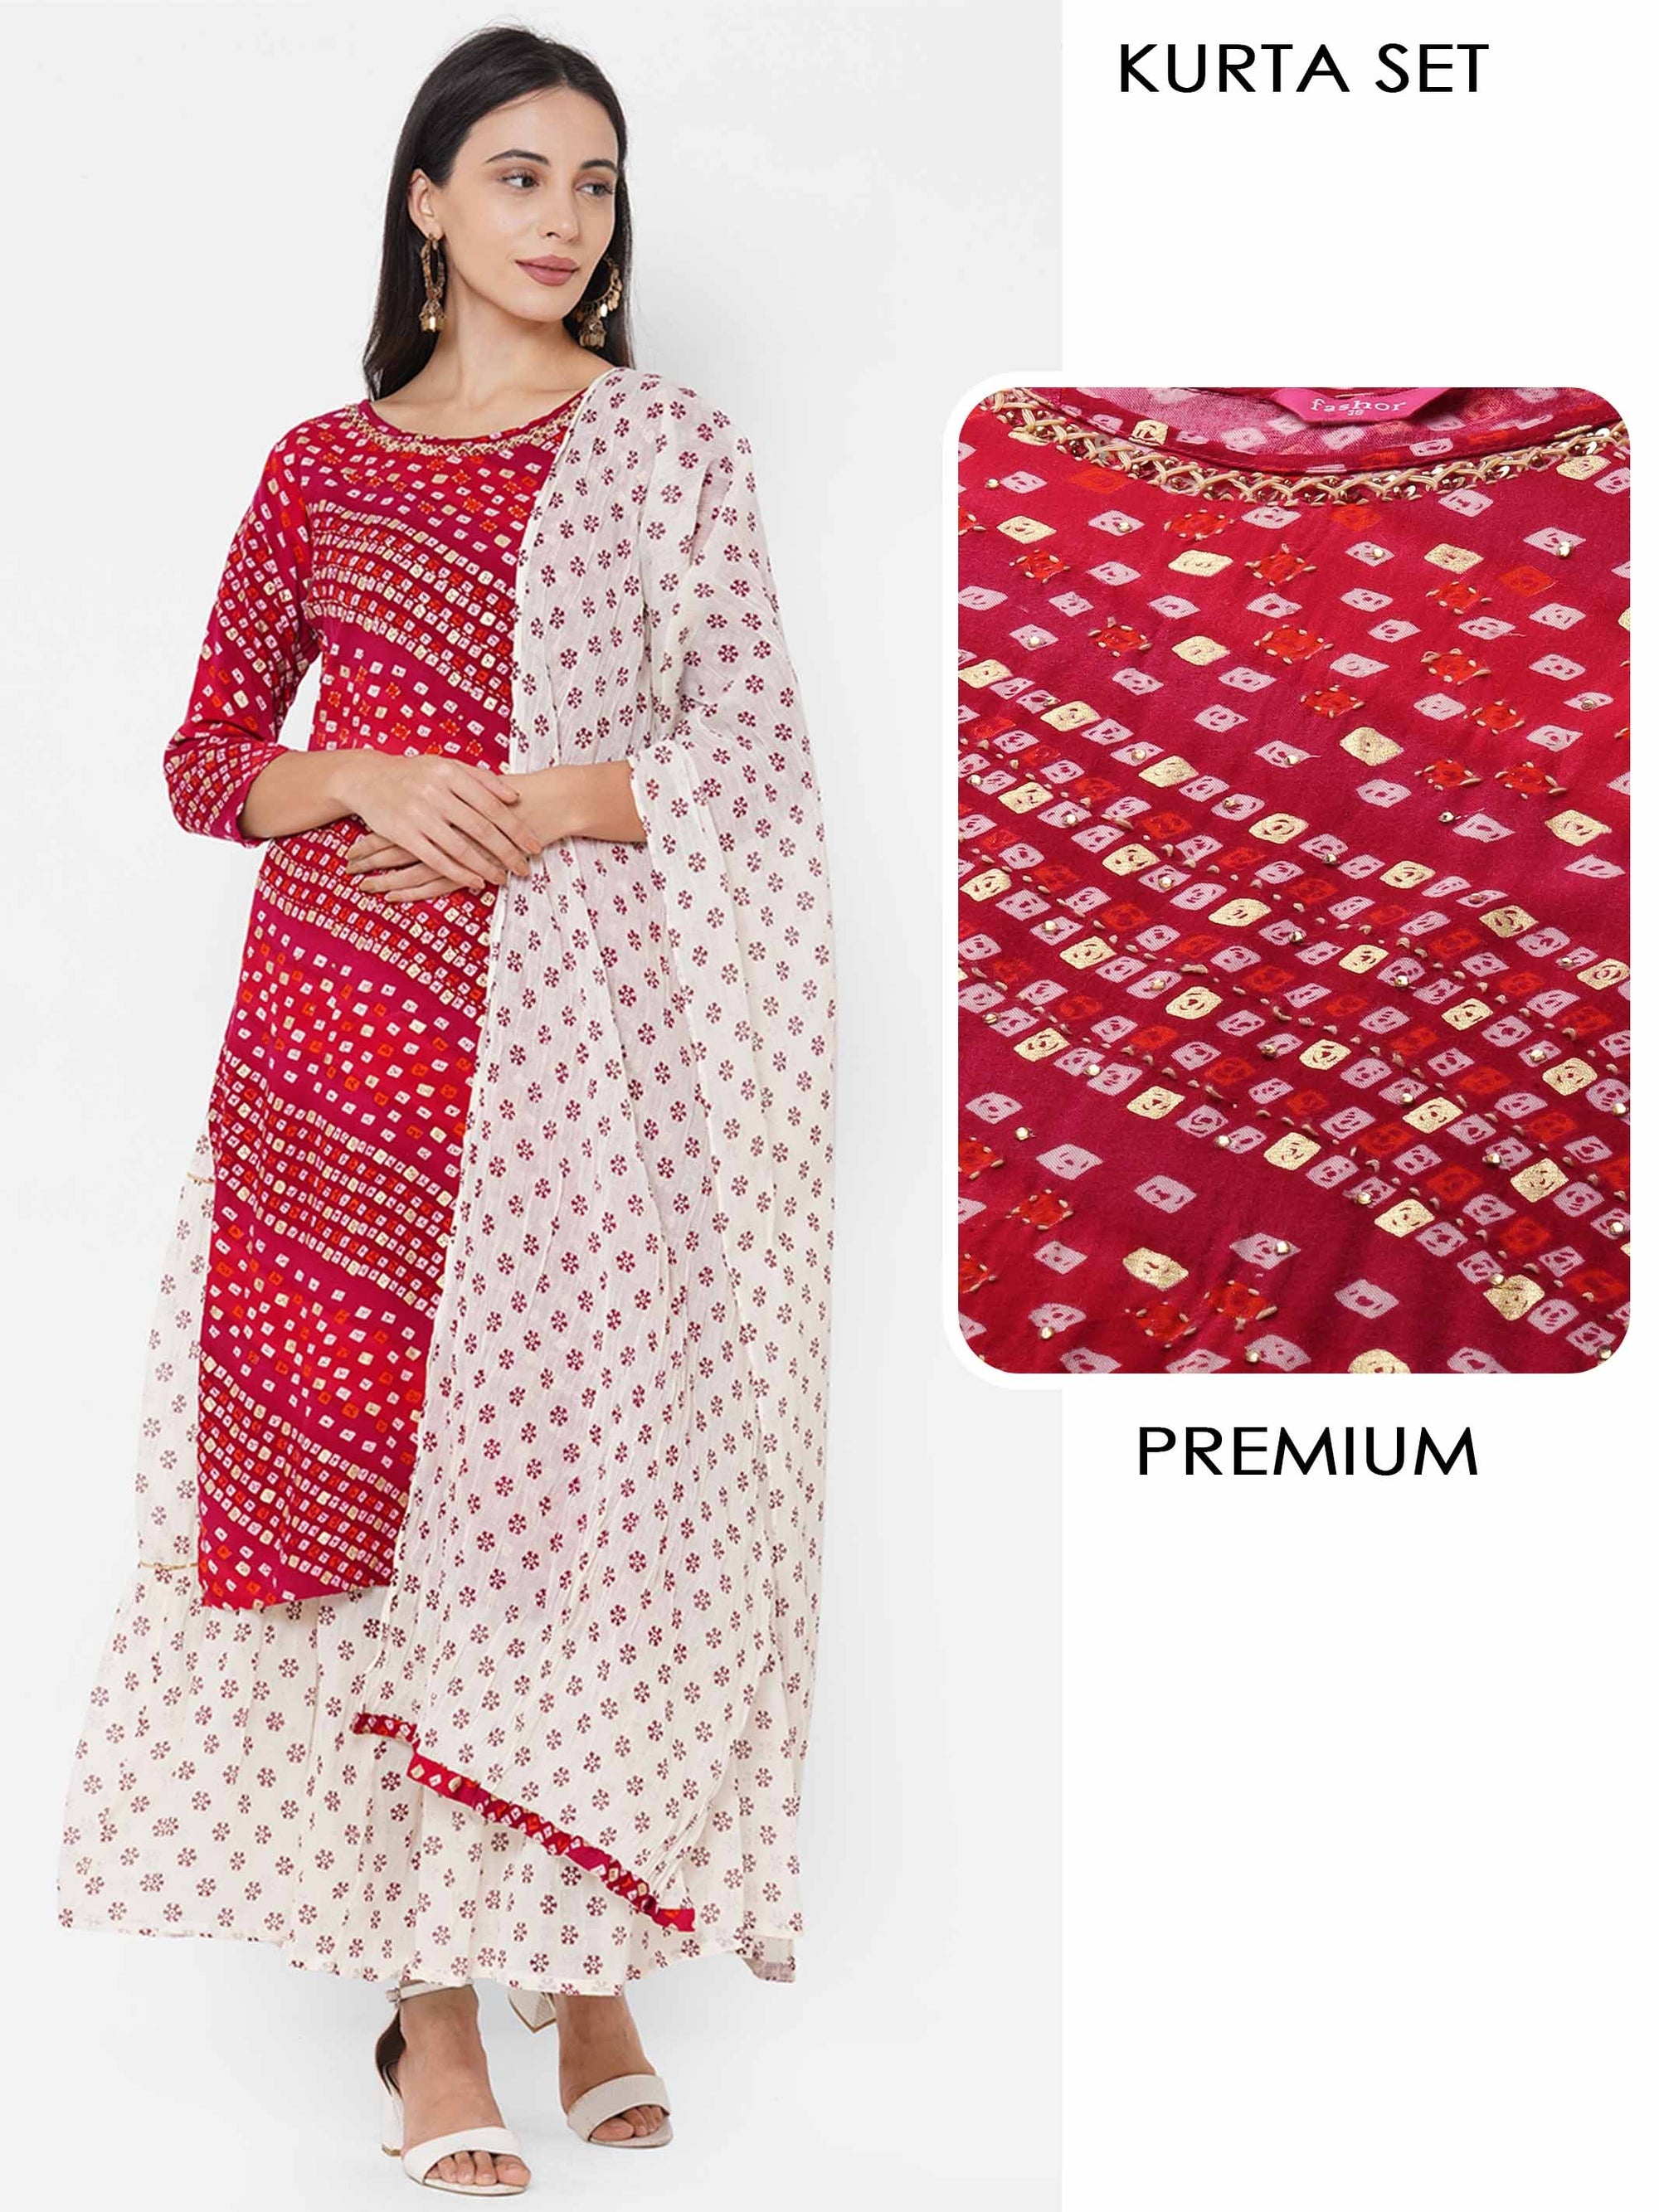 Bandhani Printed & Embroidered Kurta with Ethnic Printed Skirt & Ethnic Printed Dupatta - Carmine Red